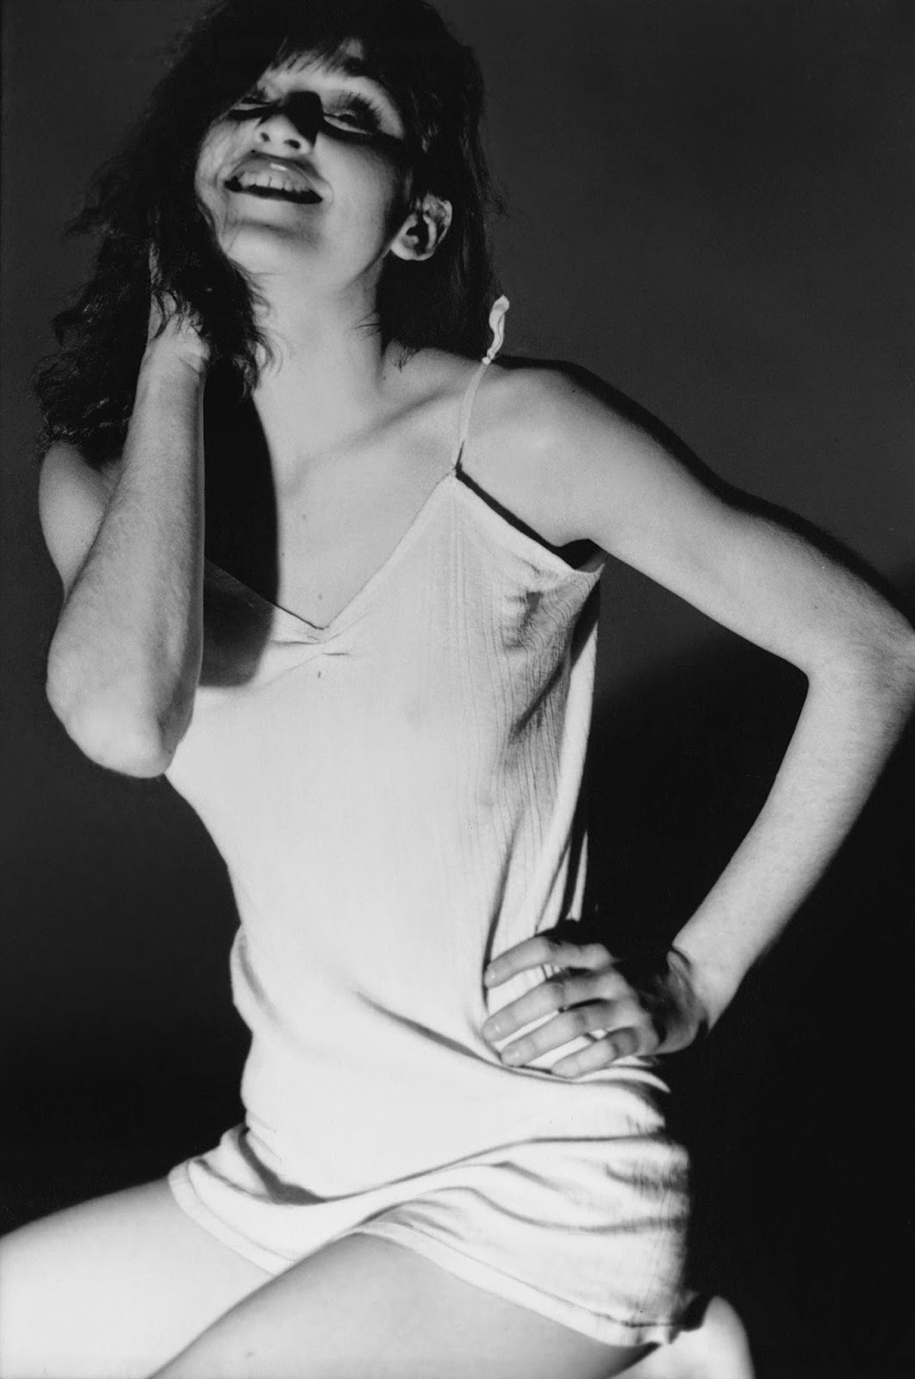 madonna-photoshoot-before-she-was-famous-new-york-27